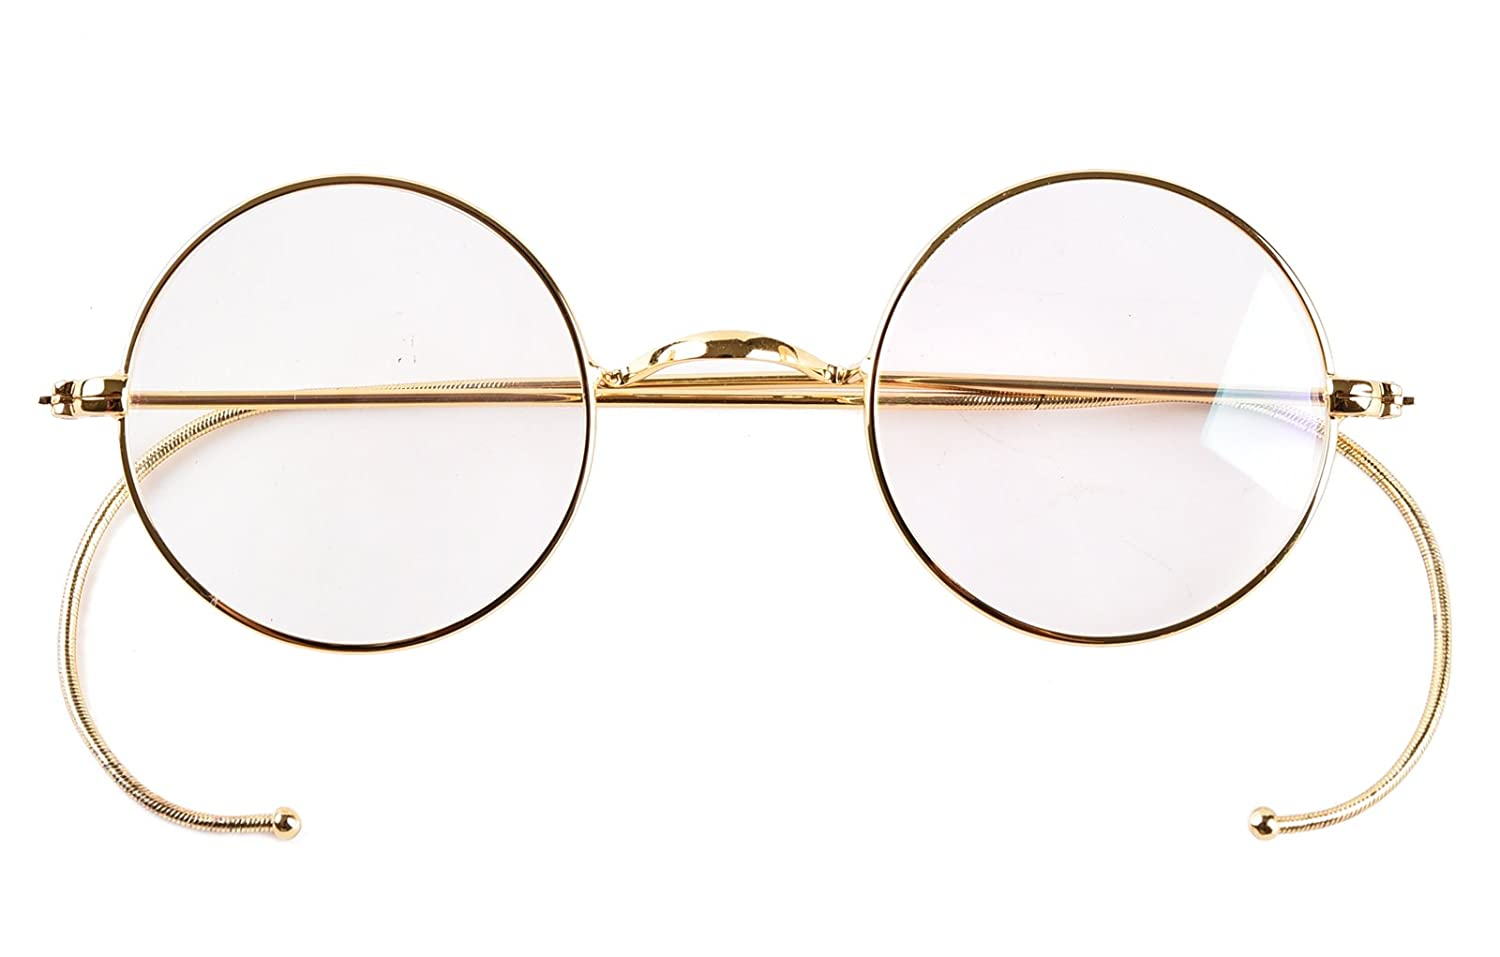 4cd599f131e5 Amazon.com: Agstum Retro Small Round Optical Rare Wire Rim Eyeglasses Frame  (Gold, 39mm): Clothing